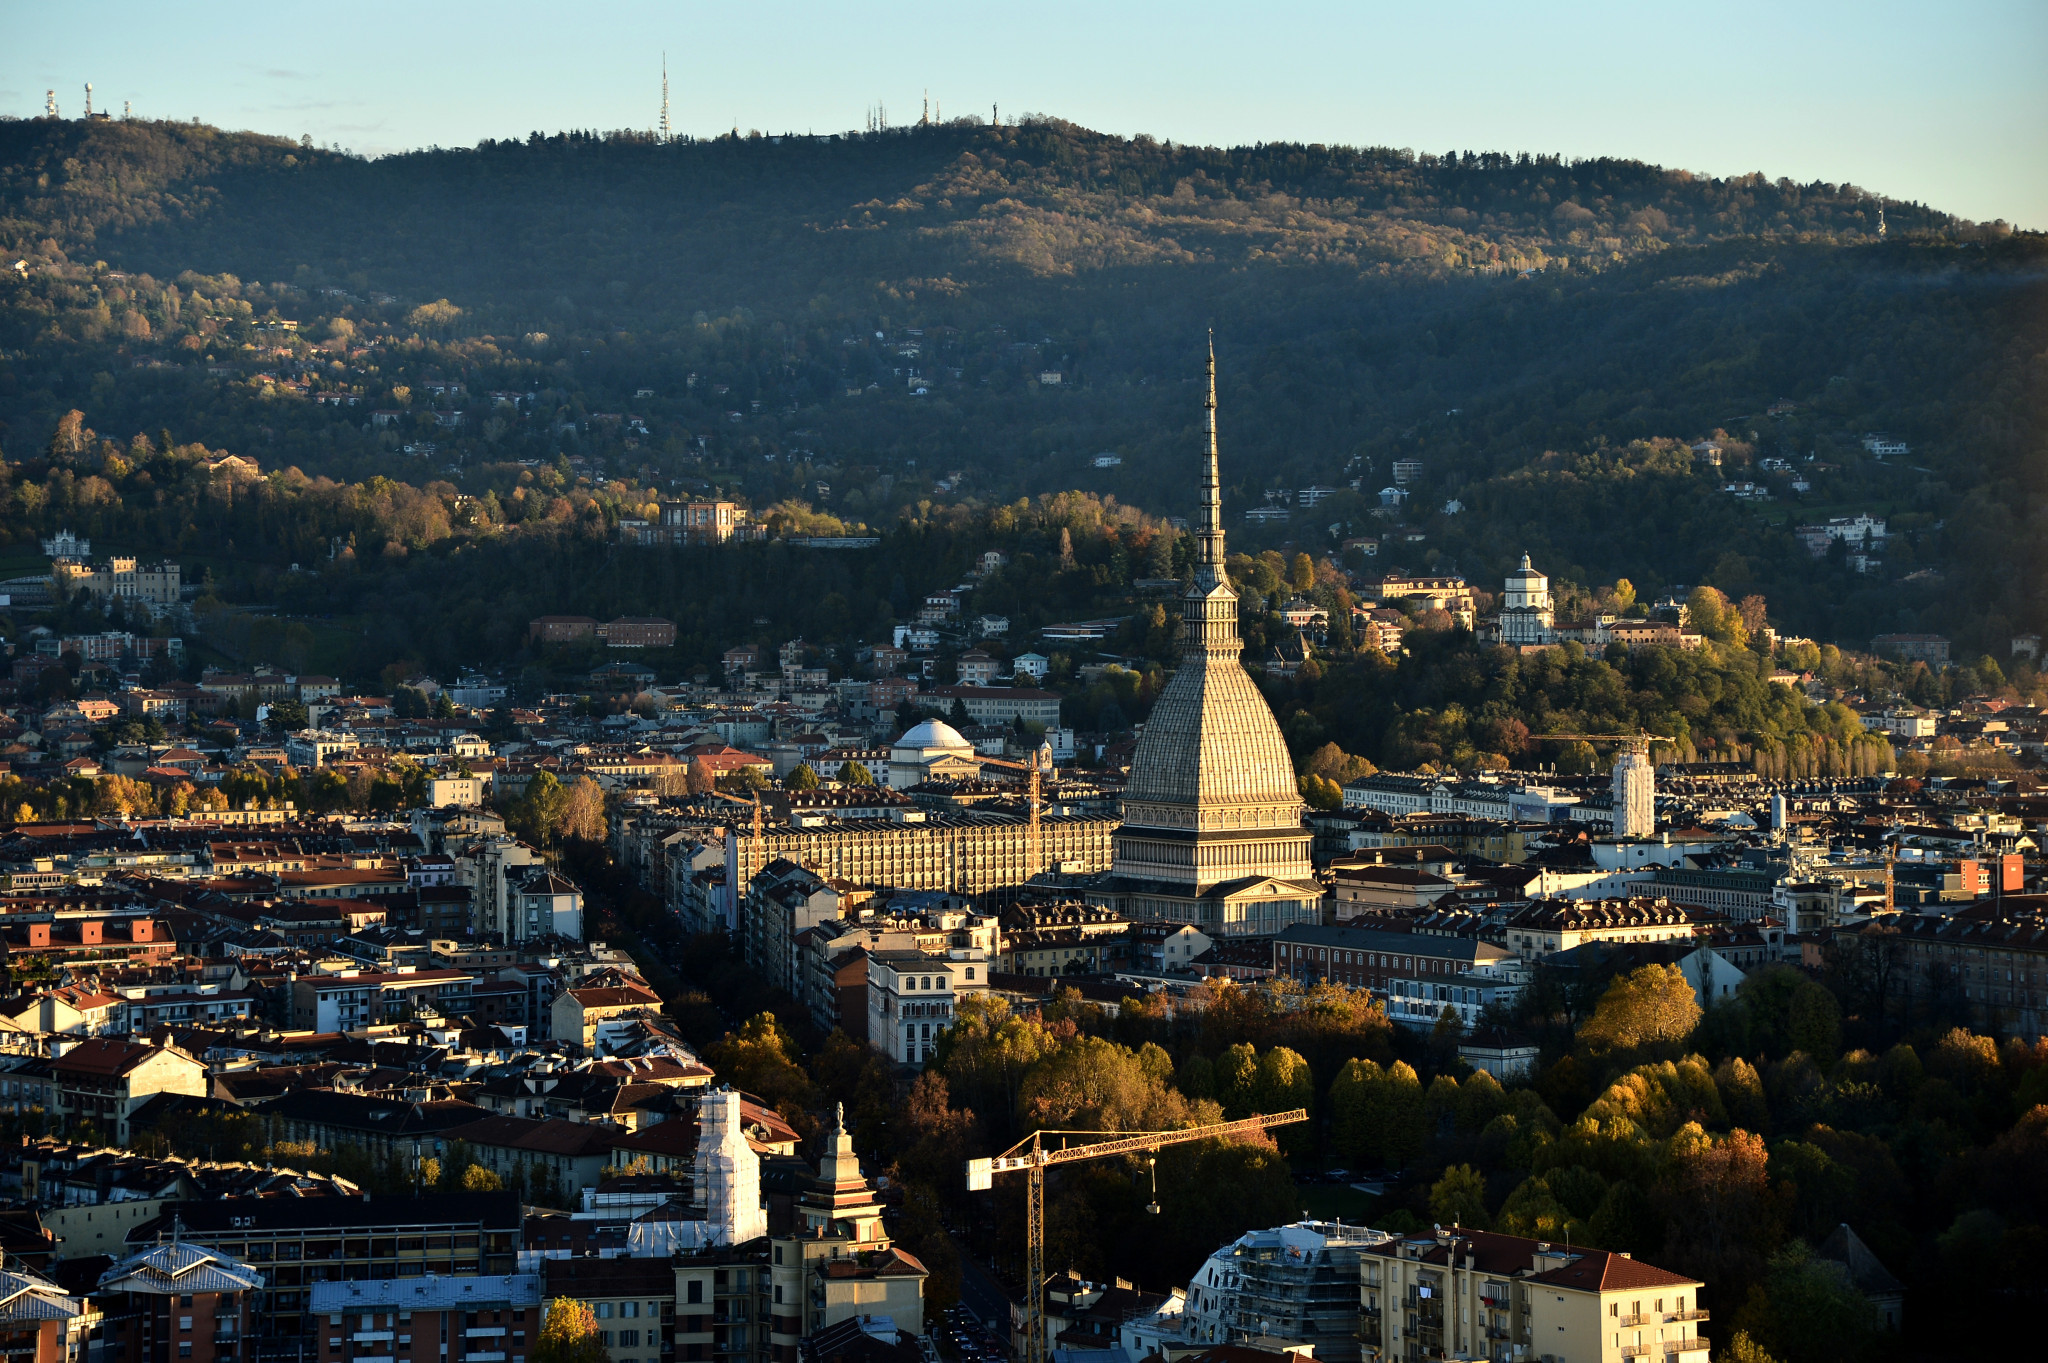 Turin bid to hold 2025 Winter Special Olympics in run-up to Milan-Cortina 2026